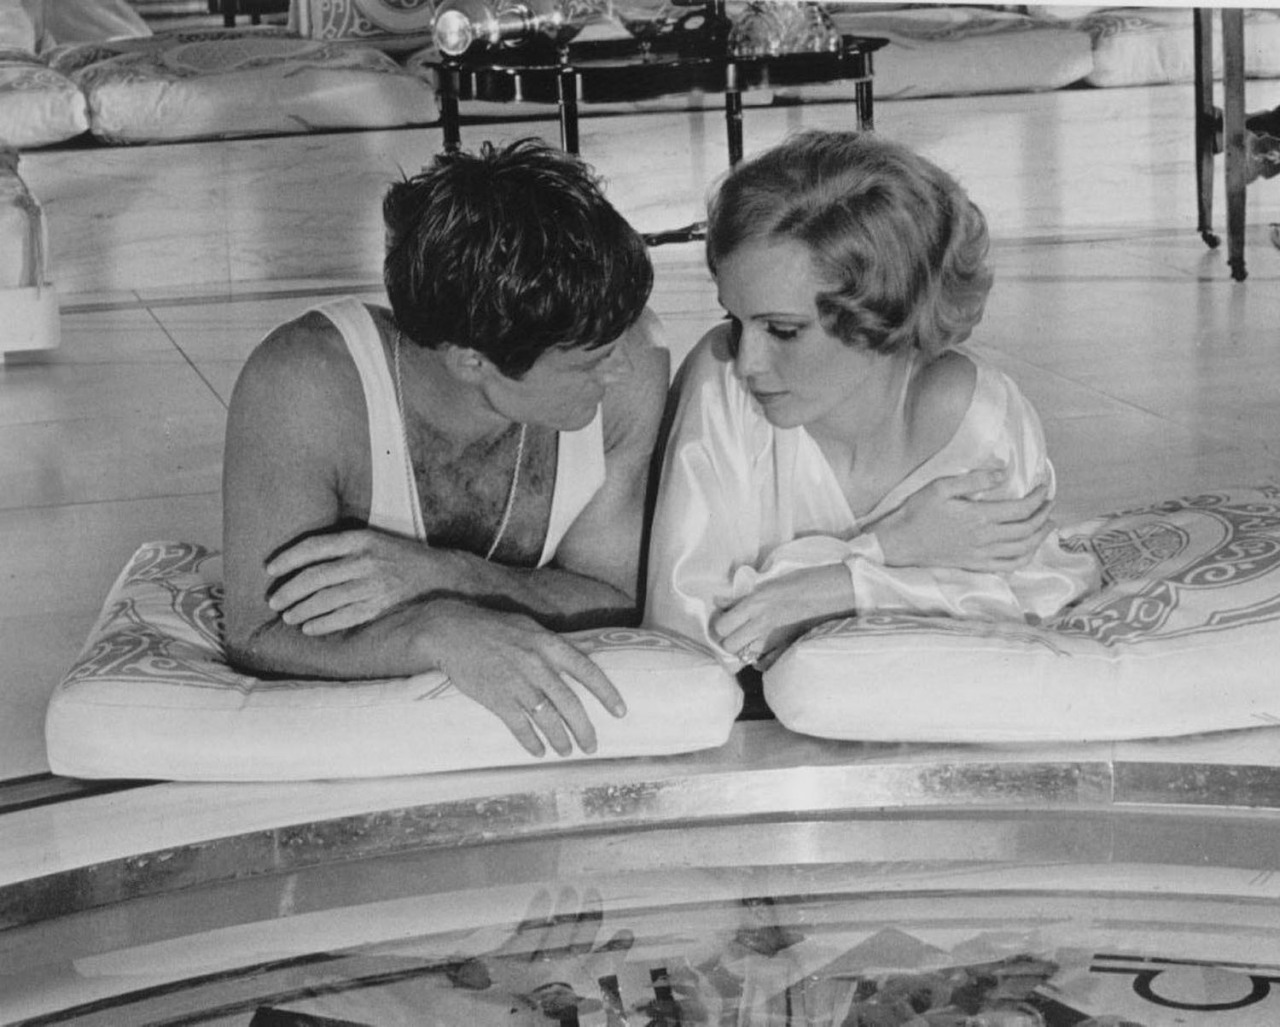 Robert Redford and Mia Farrow in 'The Great Gatsby', 1974